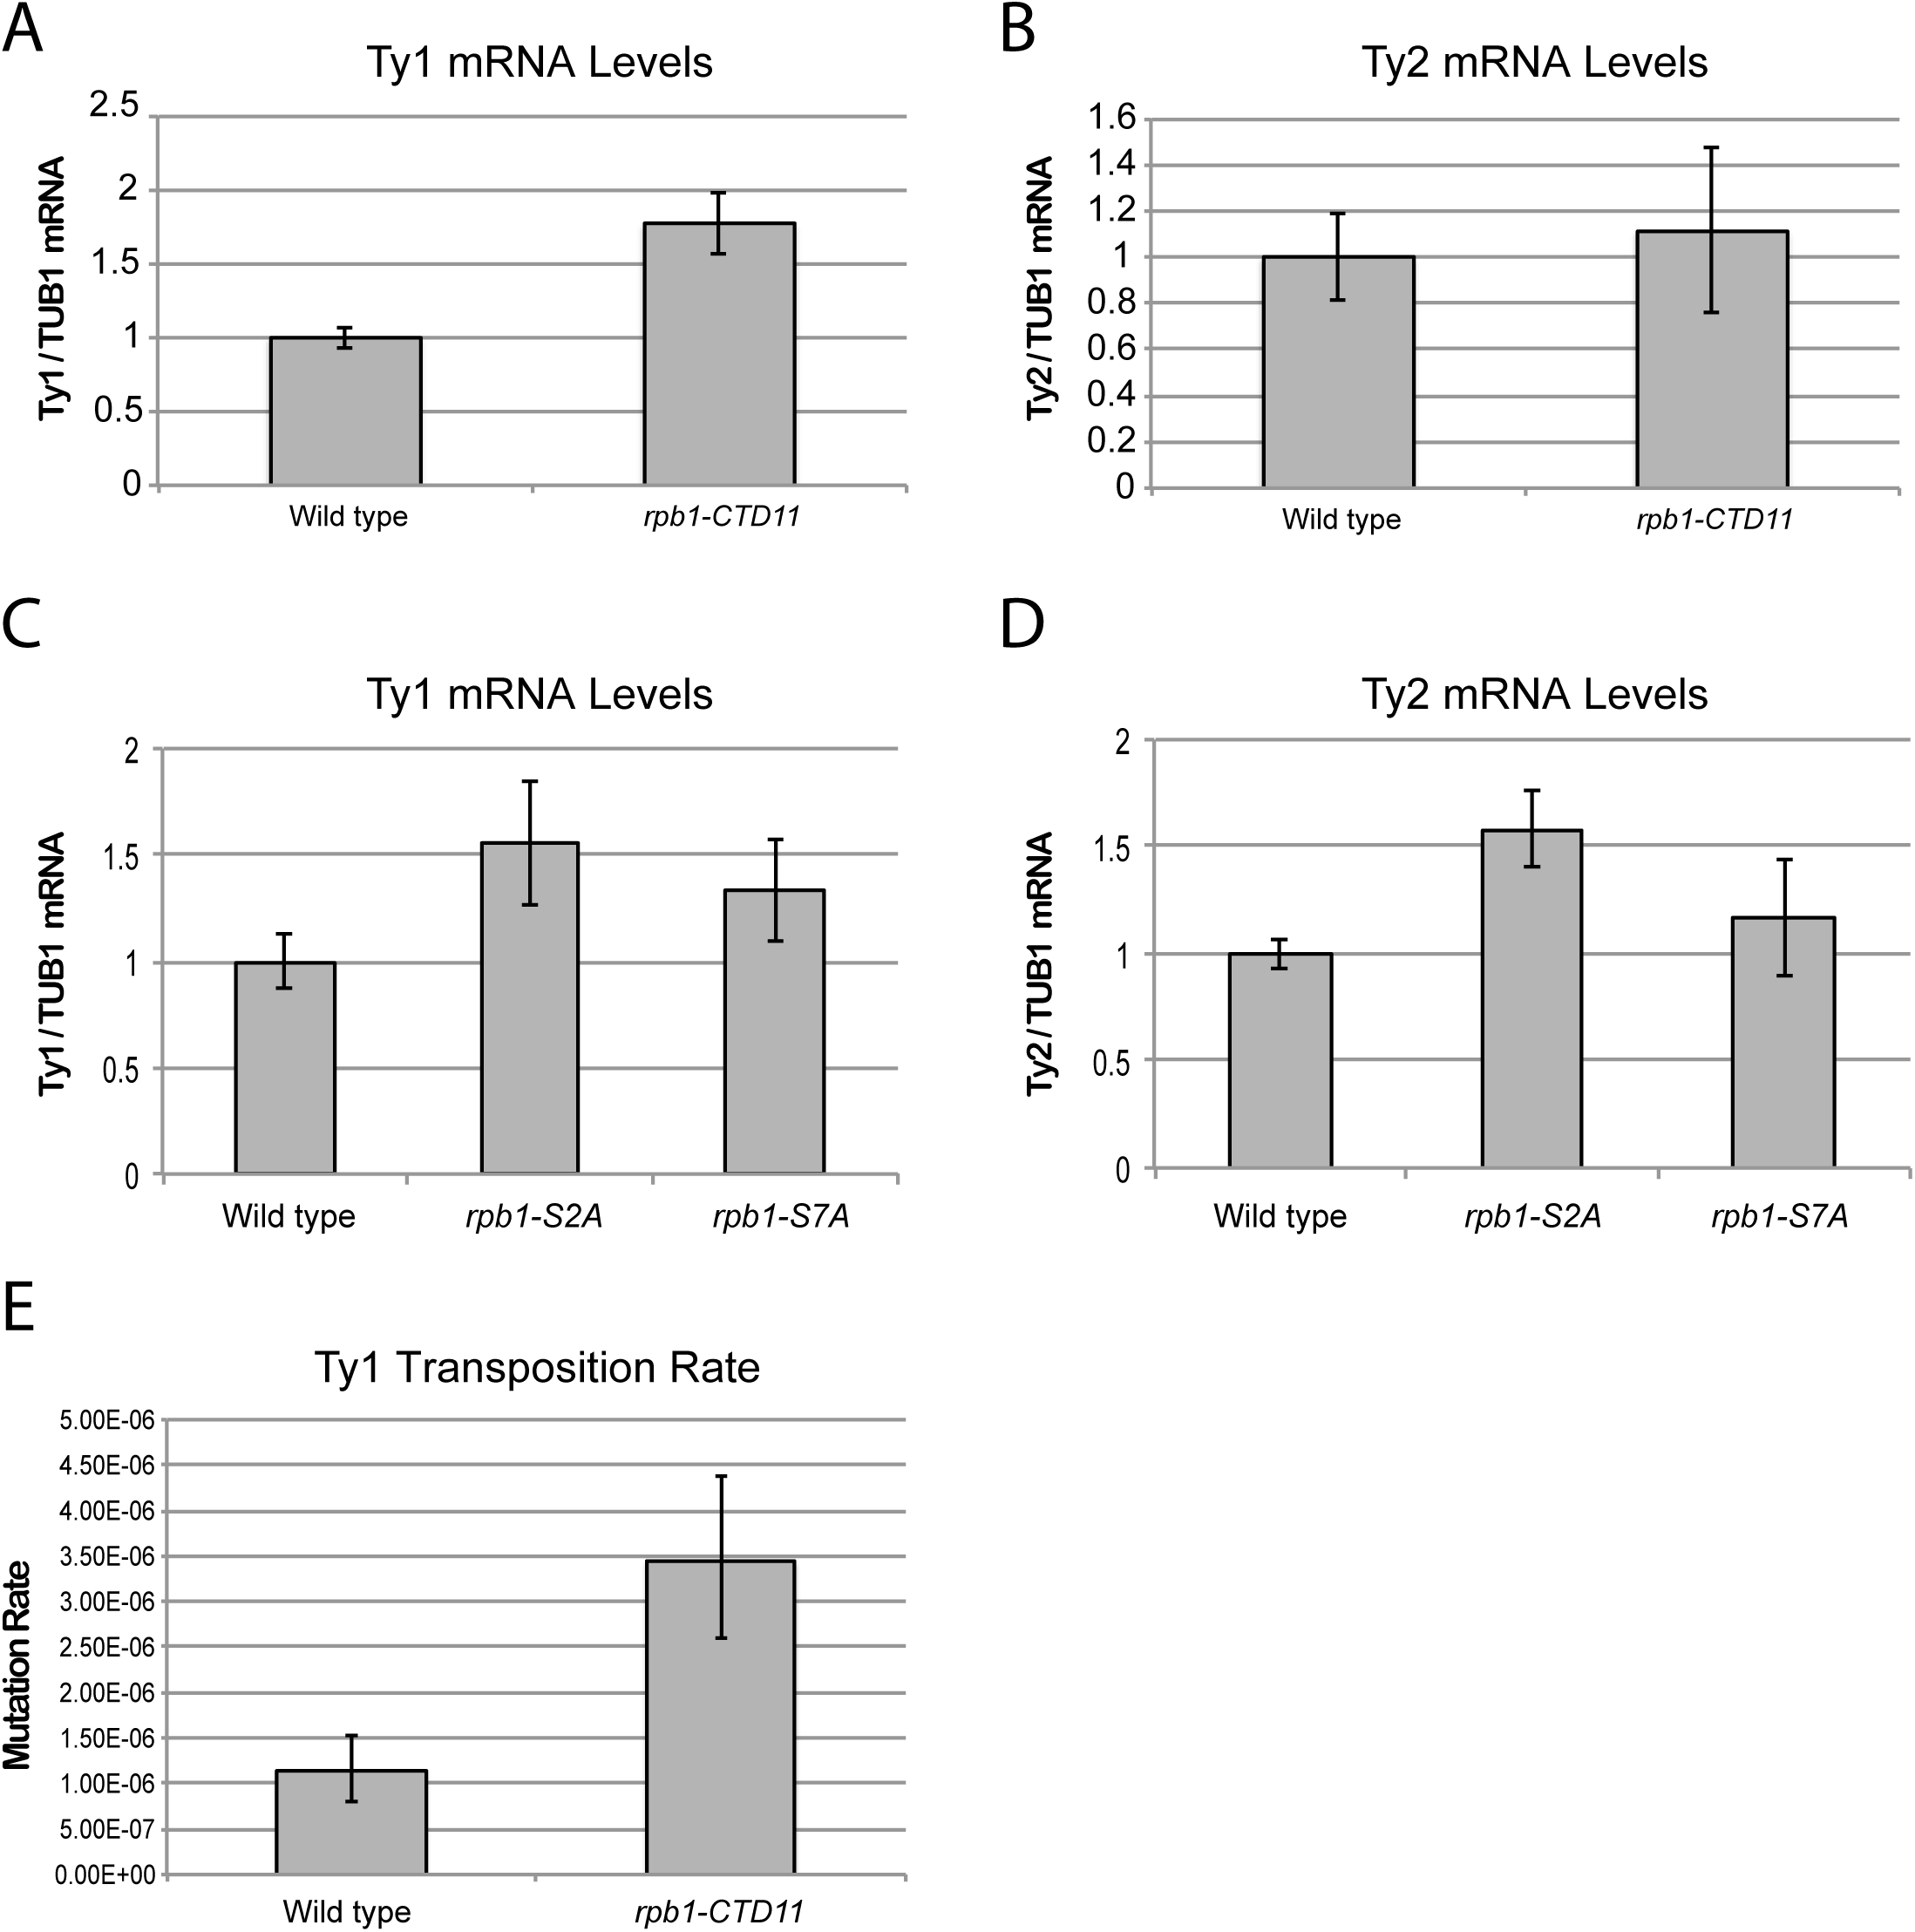 Structural integrity of the RNAPII-CTD was important for normal retrotransposon mRNA levels and transposition rates.